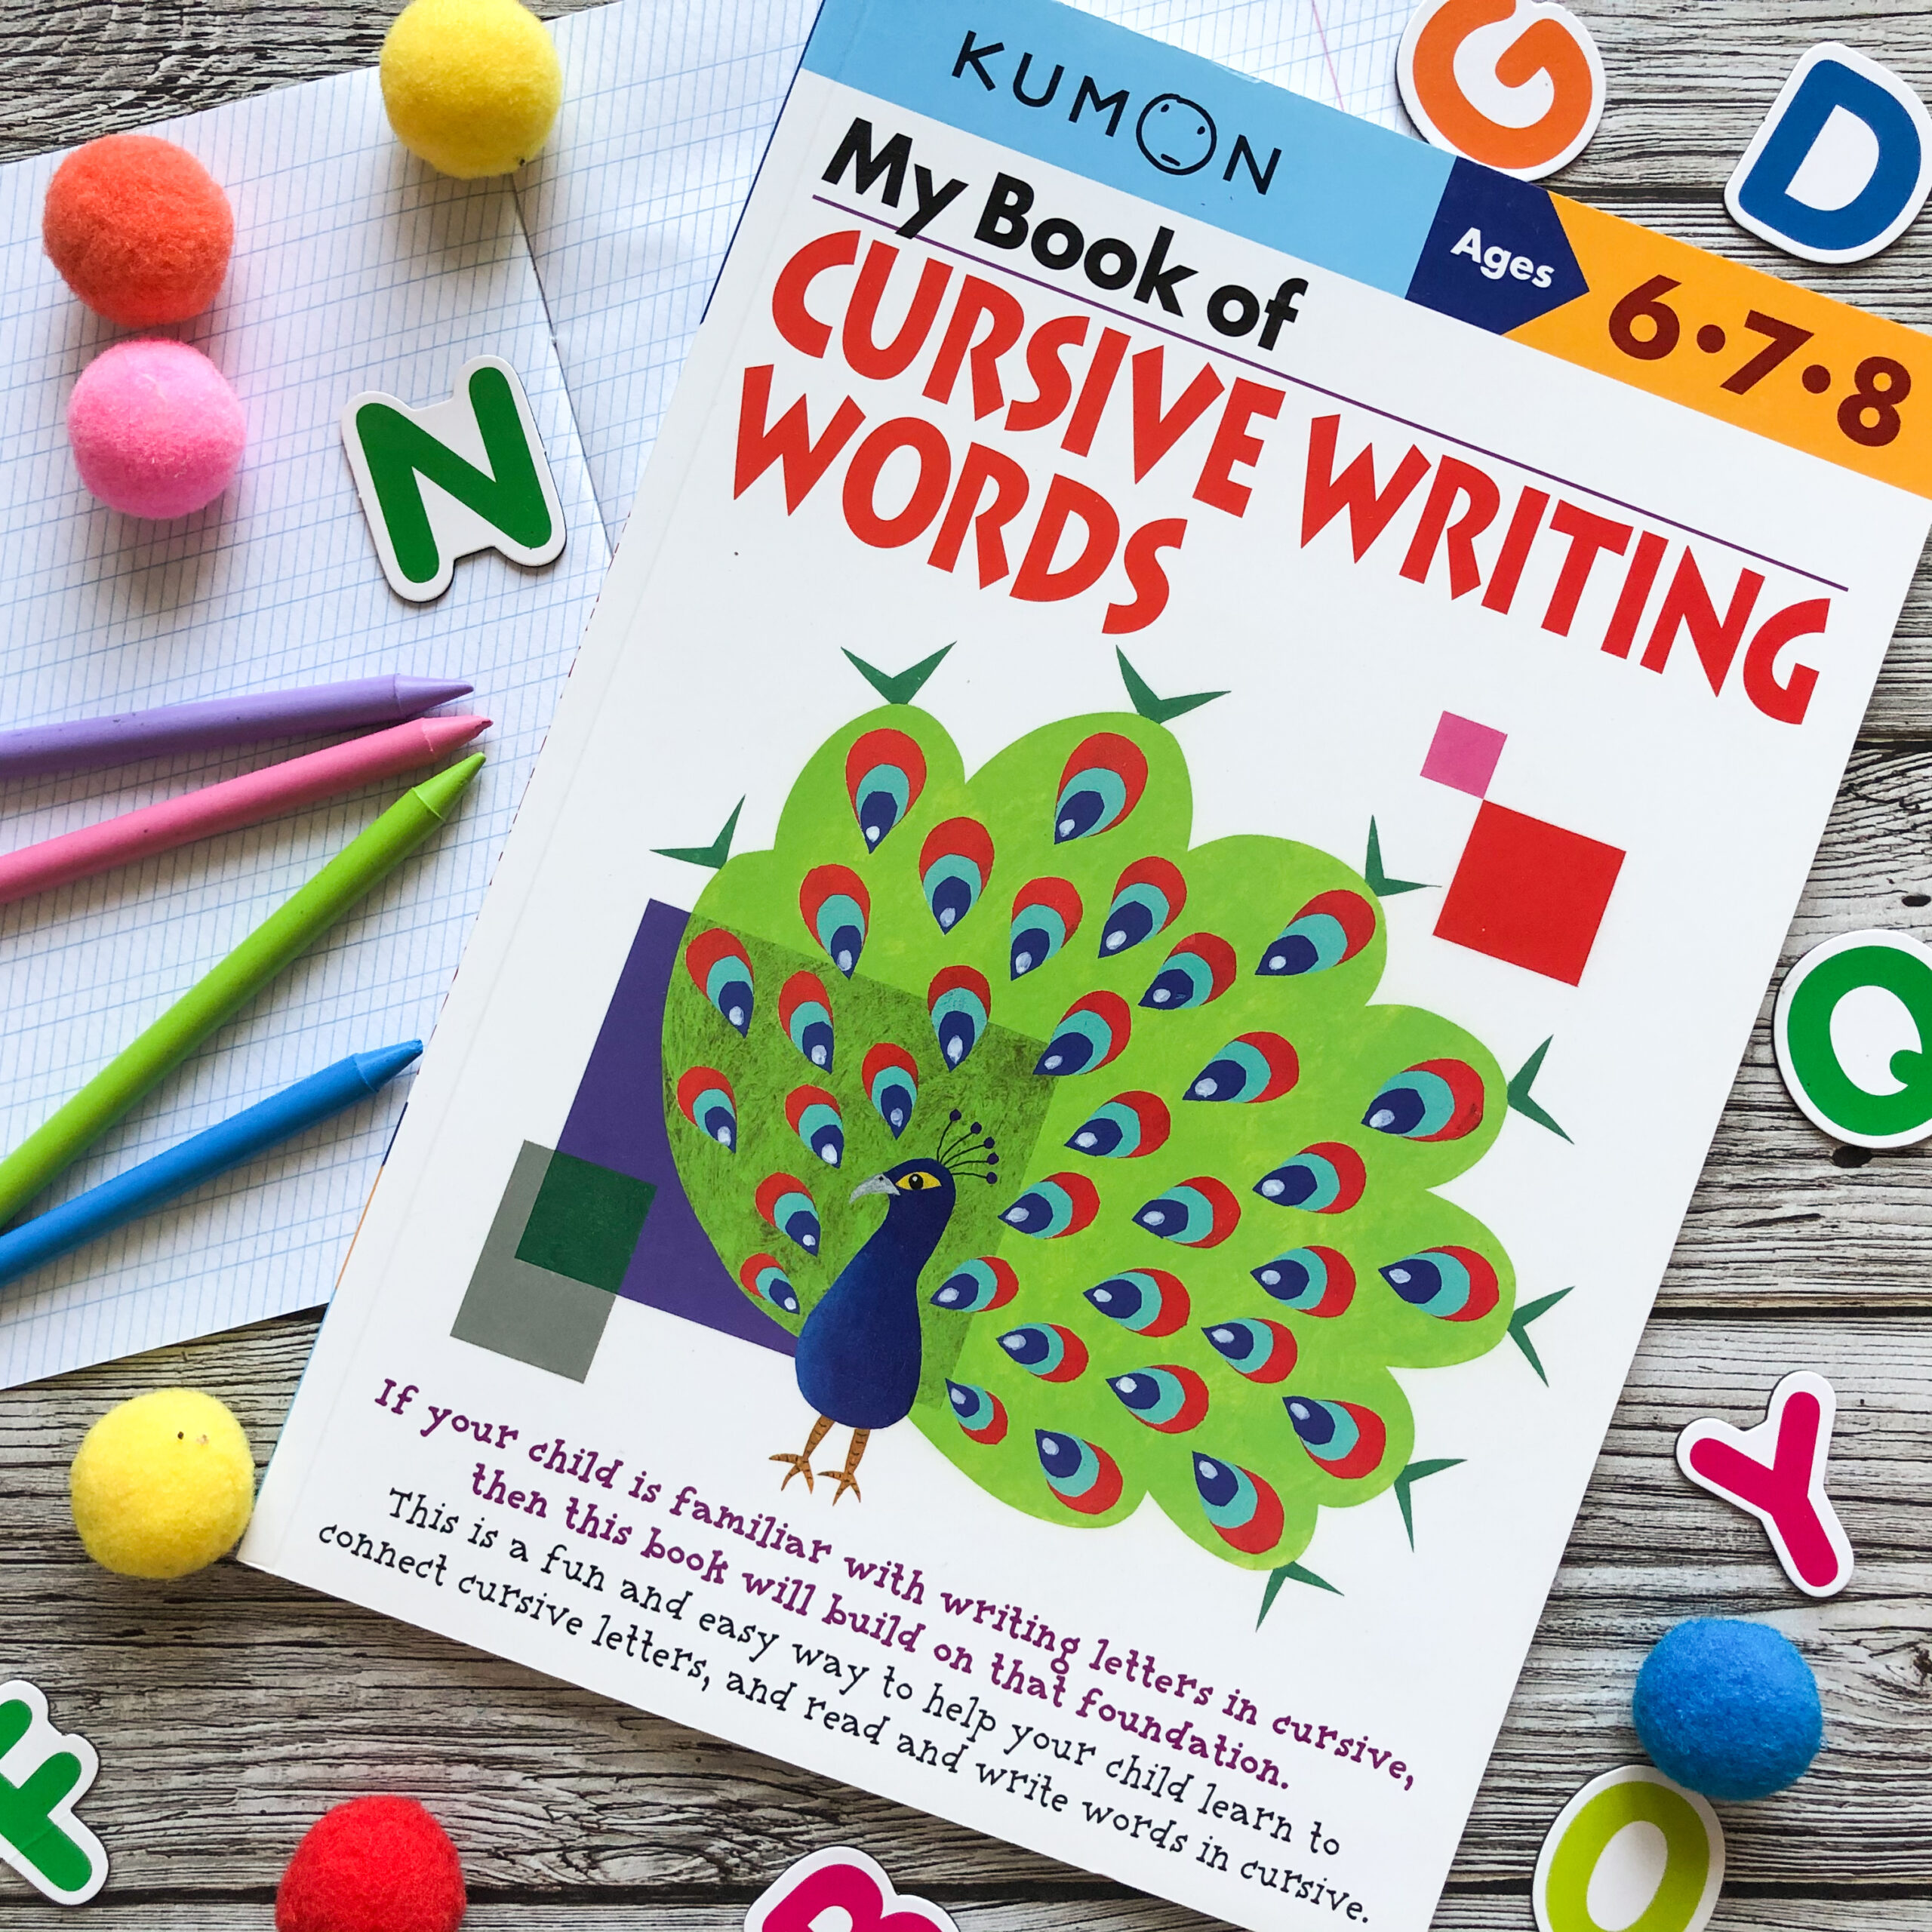 My Book Of Cursive Writing: Words, 6-8